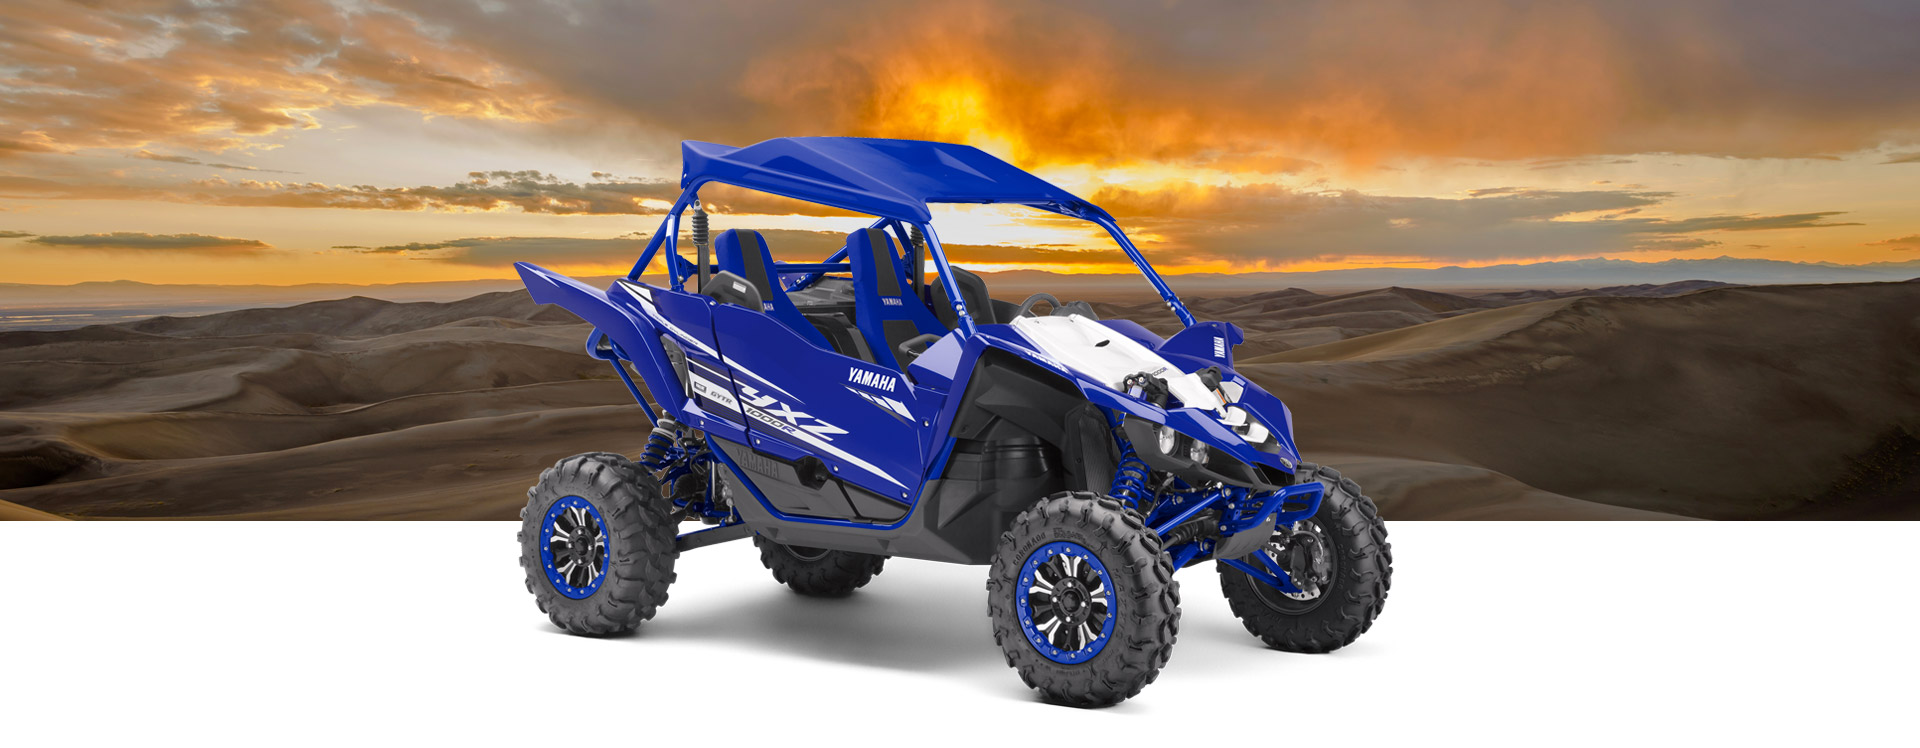 2018 Yamaha YXZ1000R SE Pure Sport Side-by-Side - Model Home